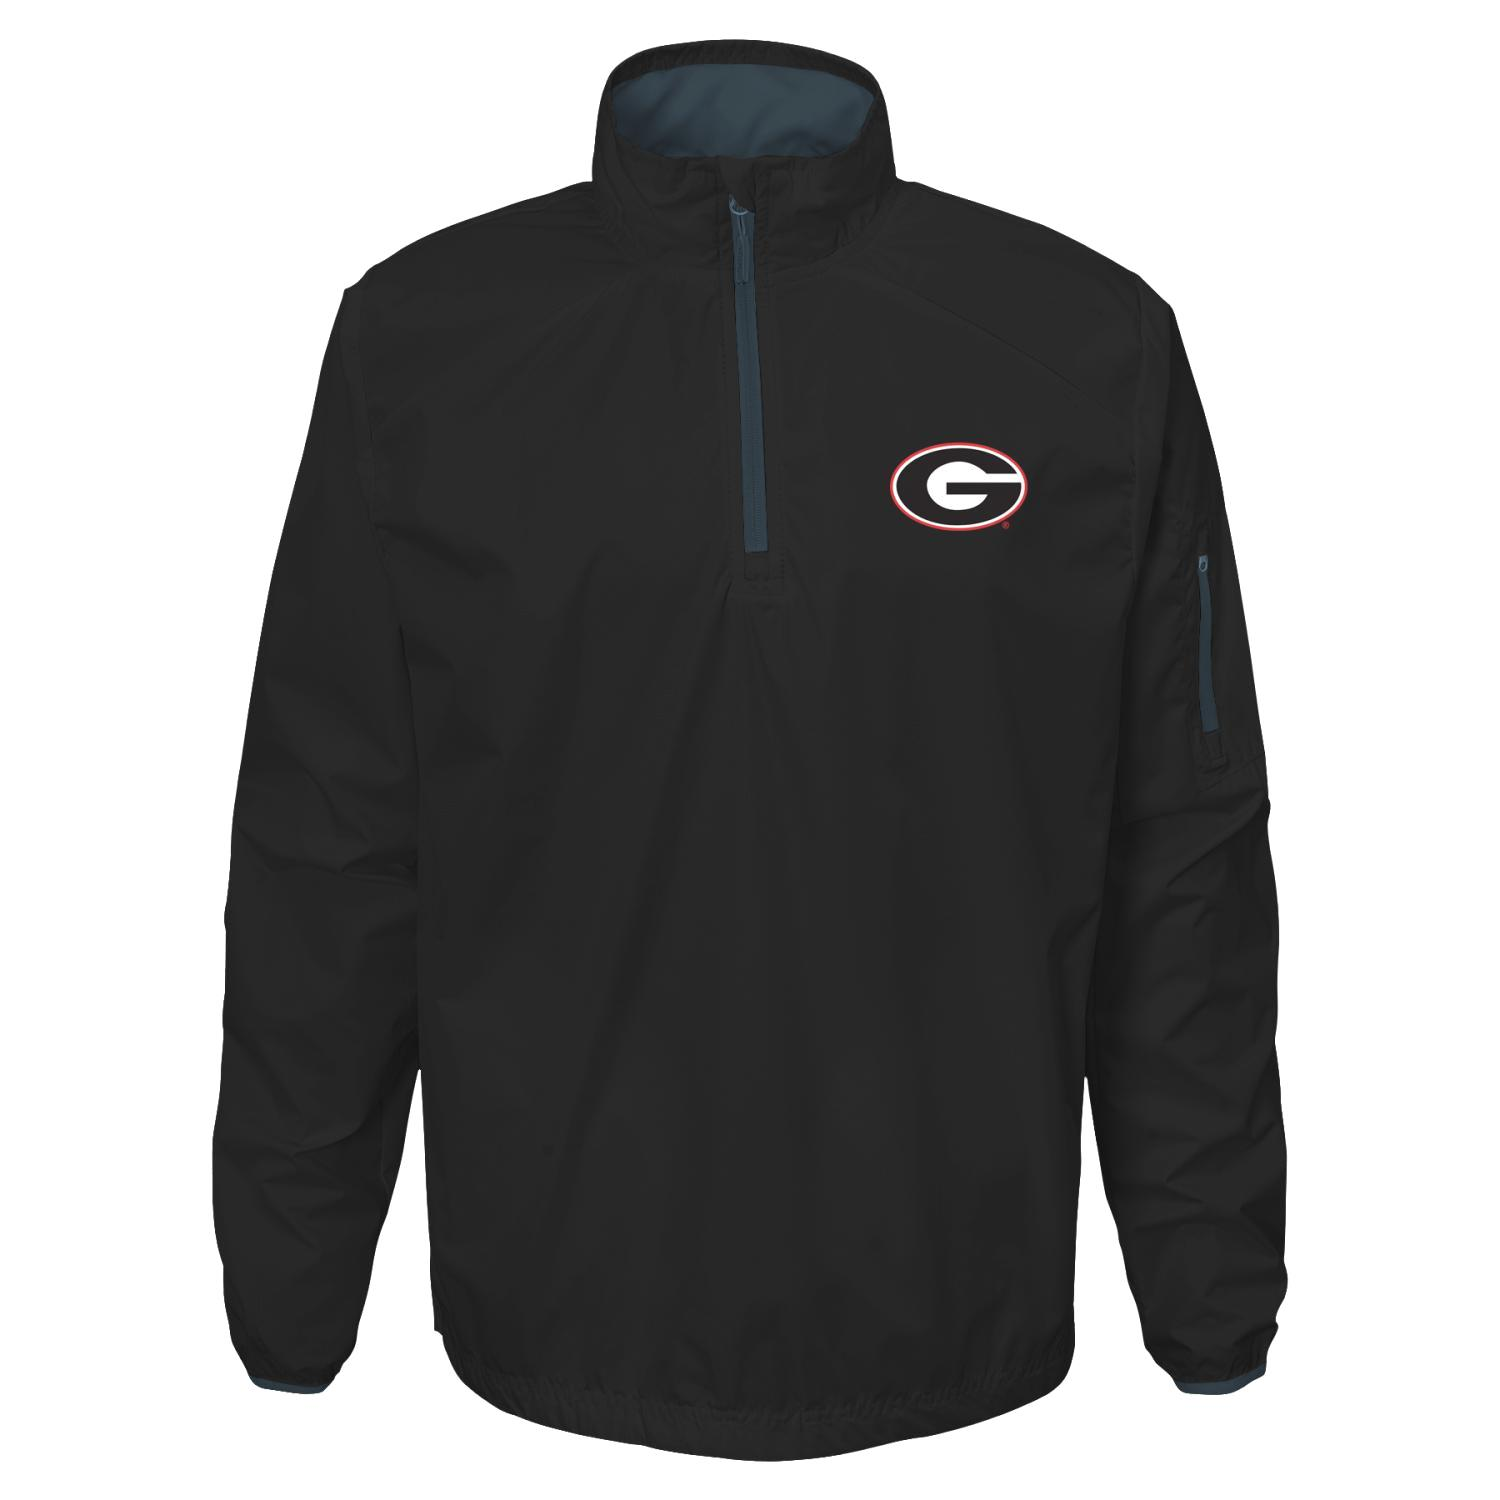 "Georgia Bulldogs NCAA ""Apex"" Men's 1 4 Zip Pullover Performance Jacket by Gen2"